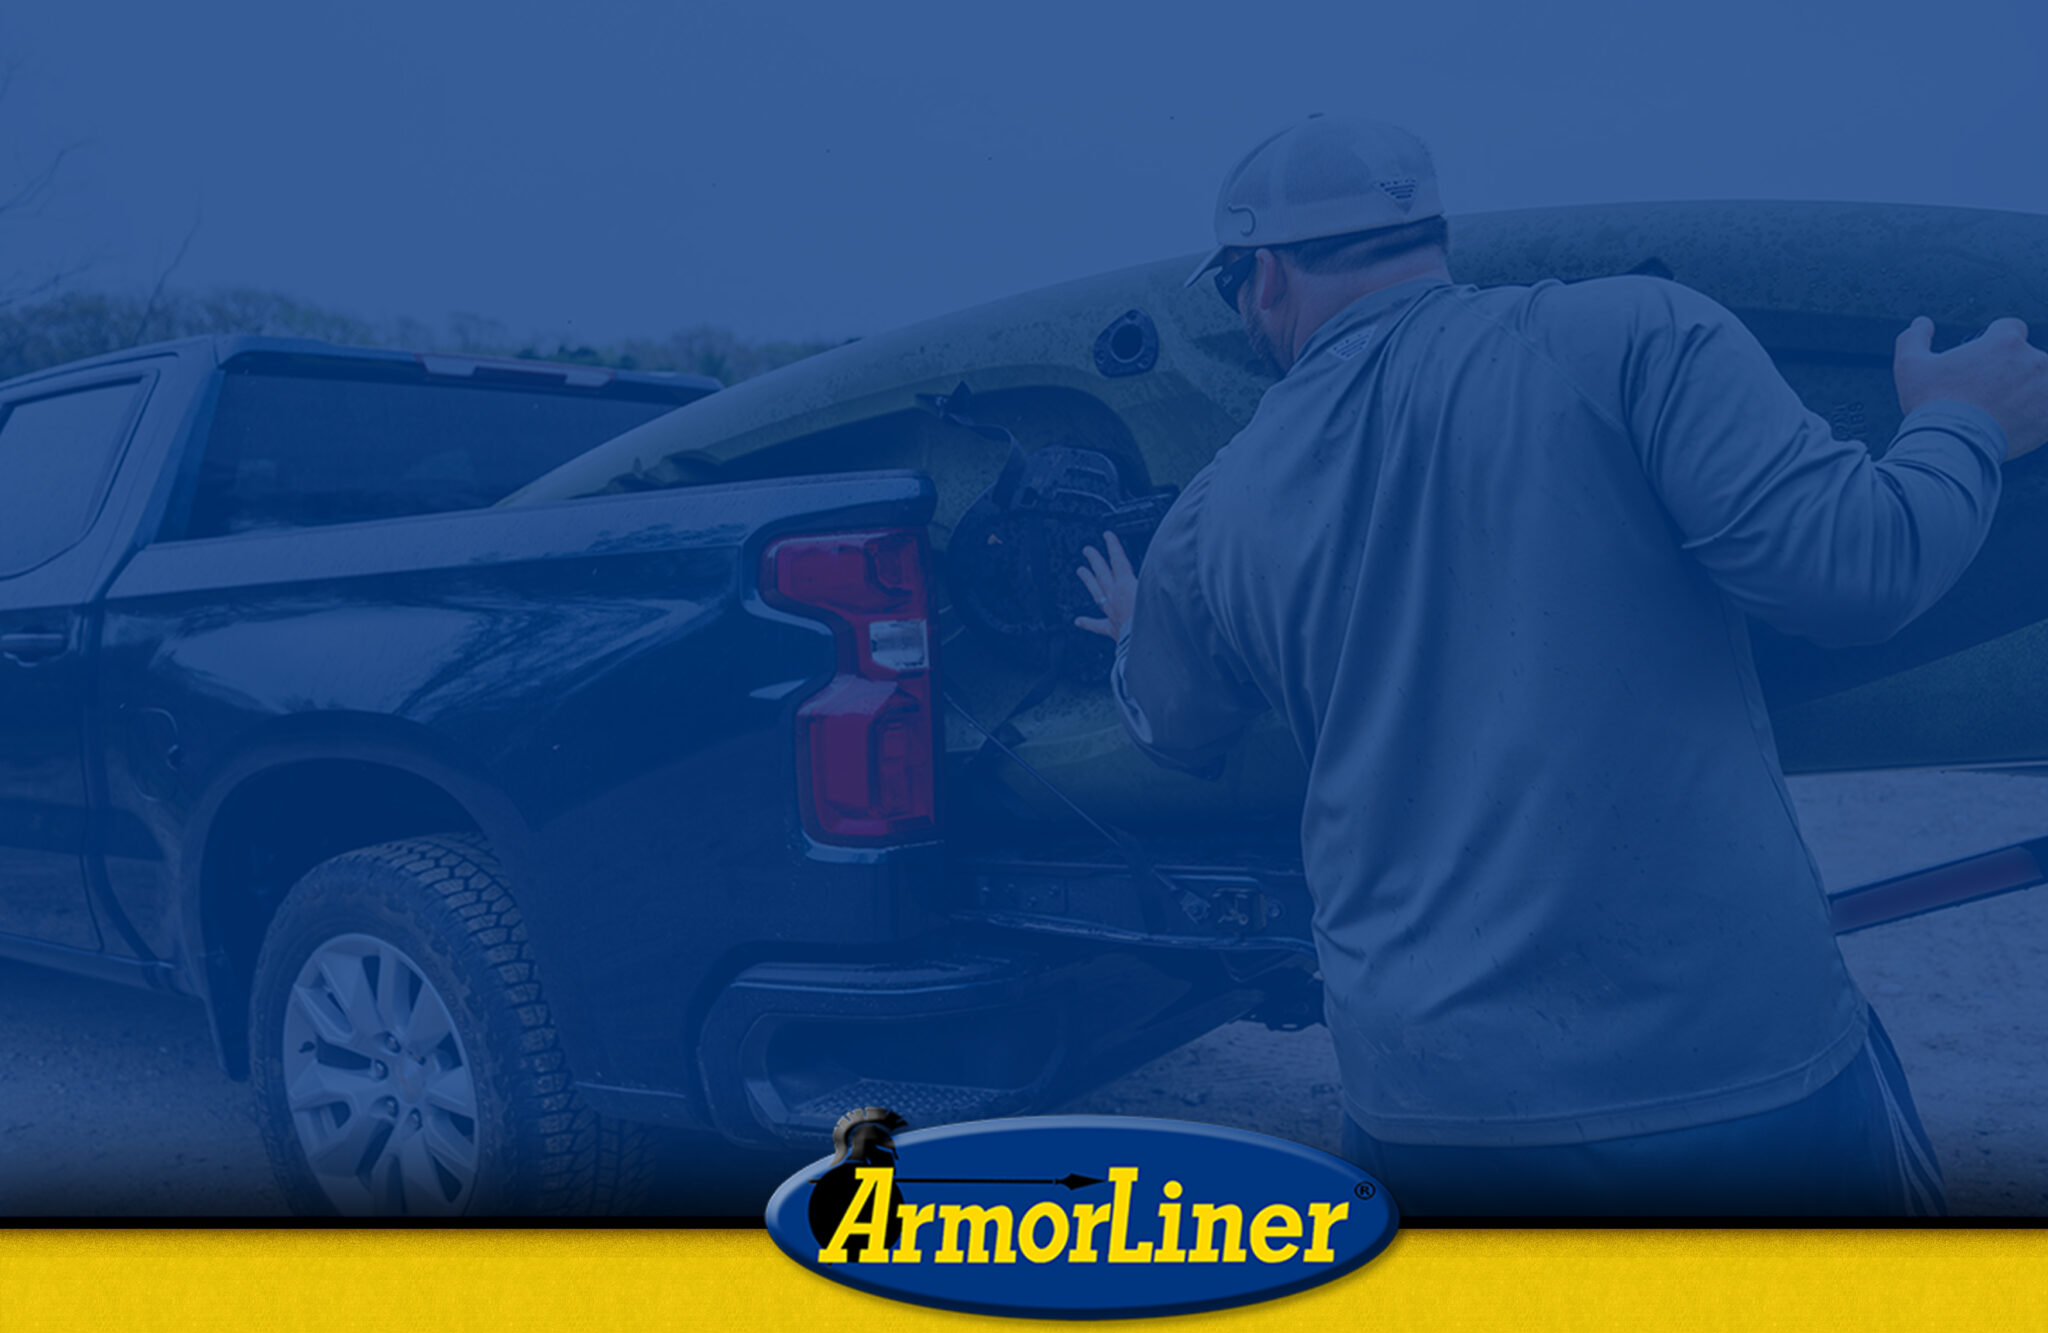 HOW TO SECURE A KAYAK IN AN ARMORLINED TRUCK BED